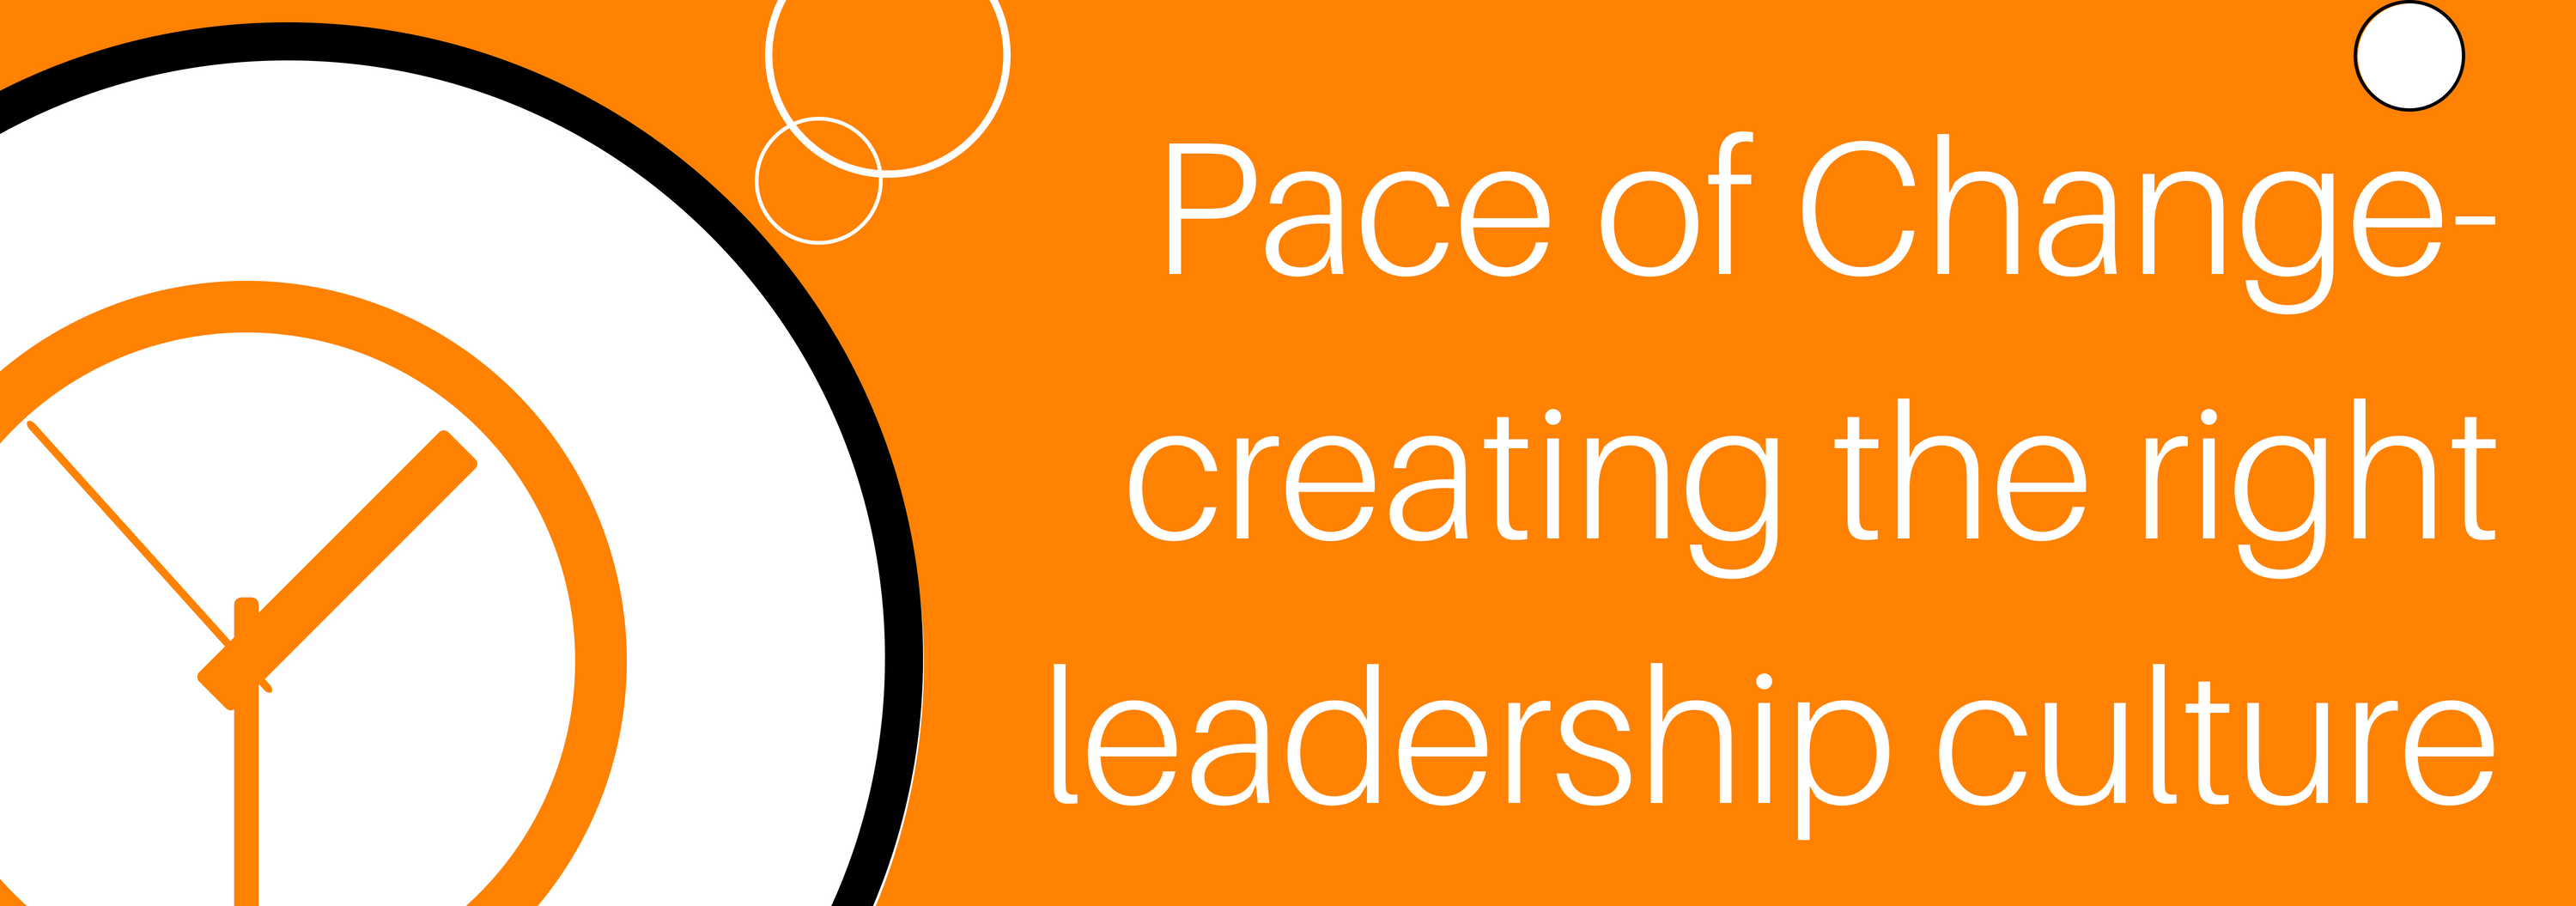 Pace of Change- creating the right leadership culture